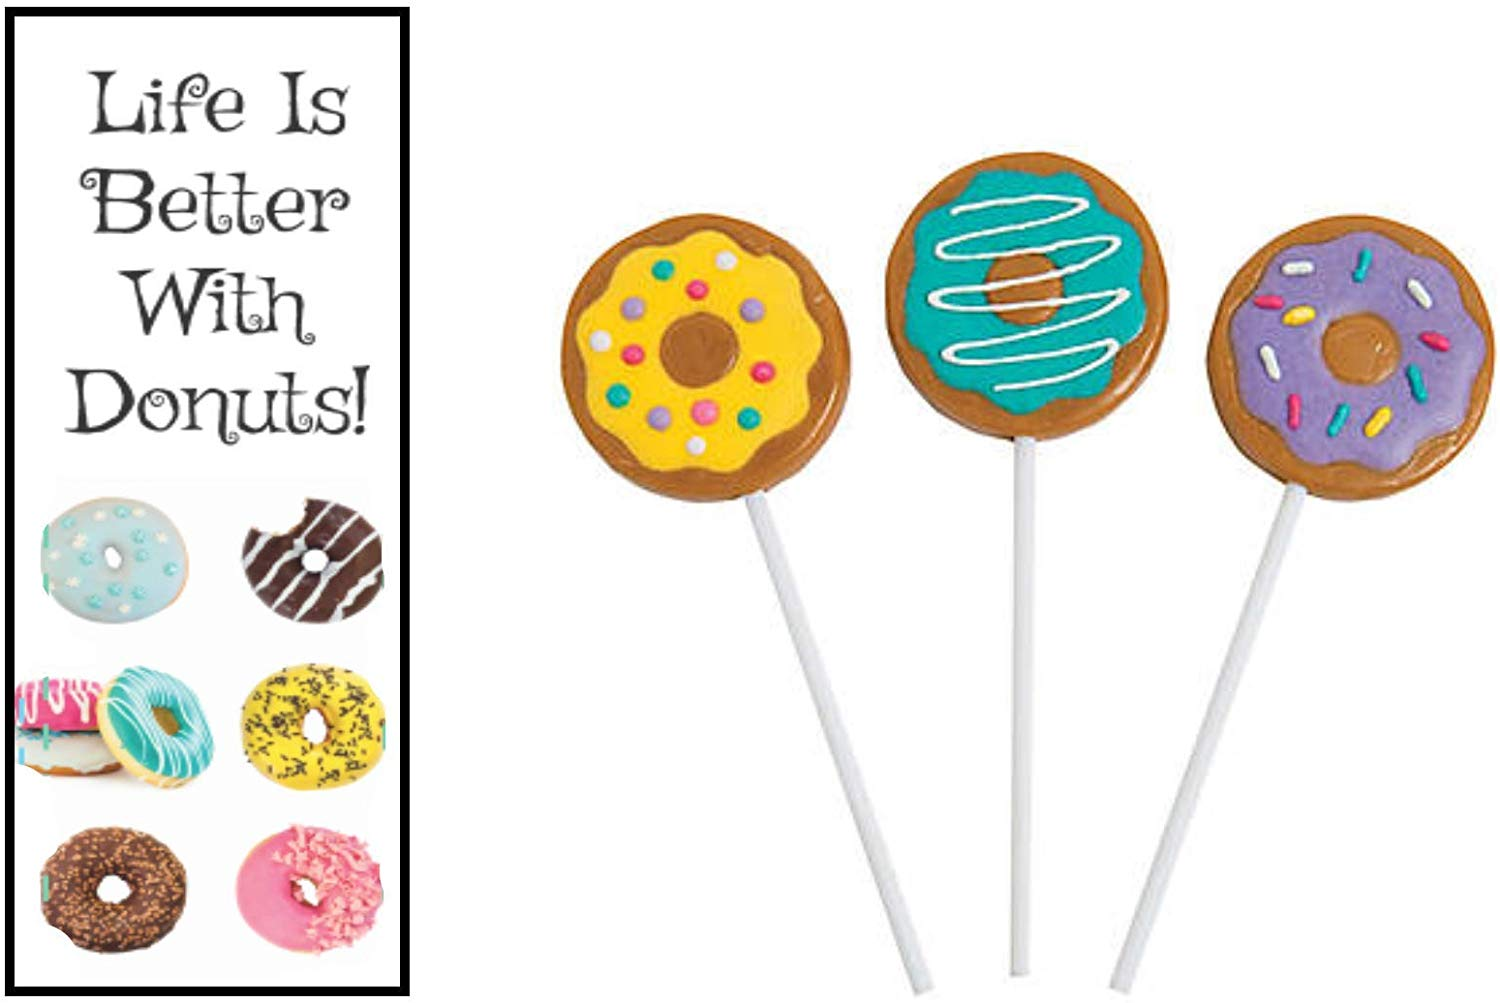 Life Is Better With Donuts Bookmarks and Donut Party Lollipops (12 Sets)